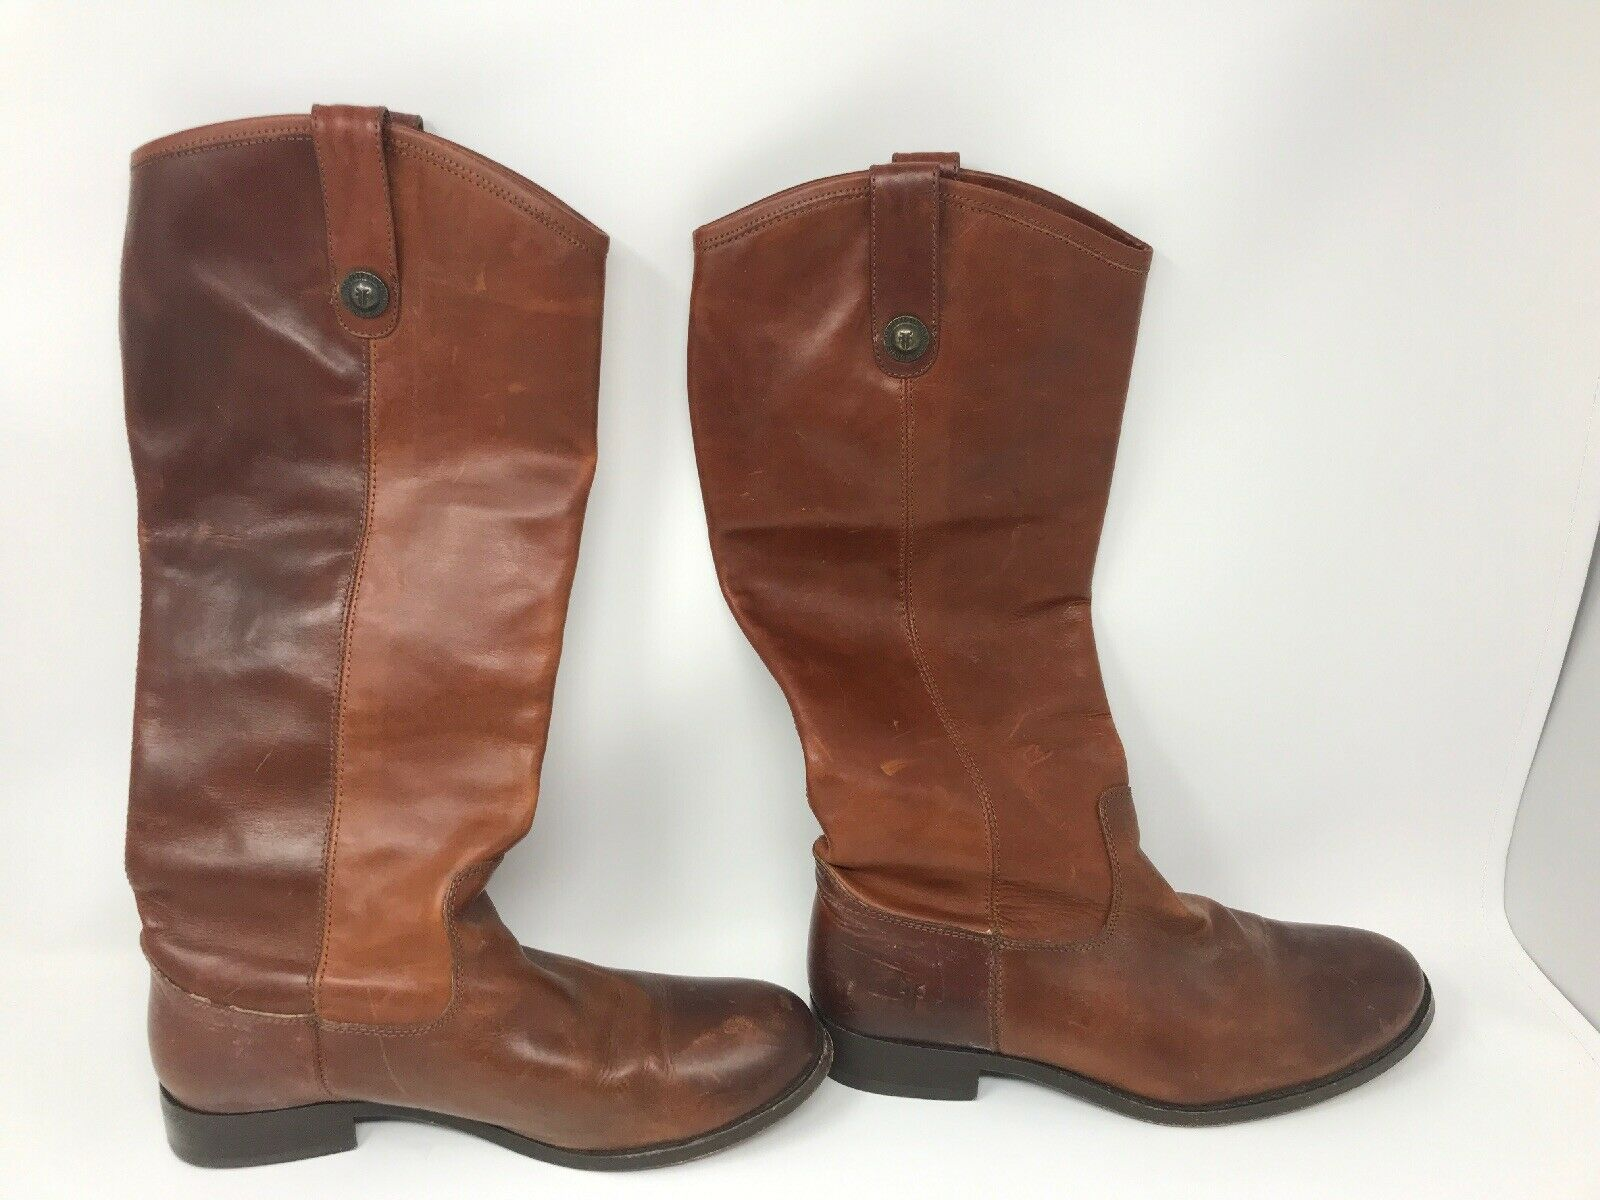 Womens Frye Melissa Brown Leather Boots Size 7.5B 4015 G 12 Knee High